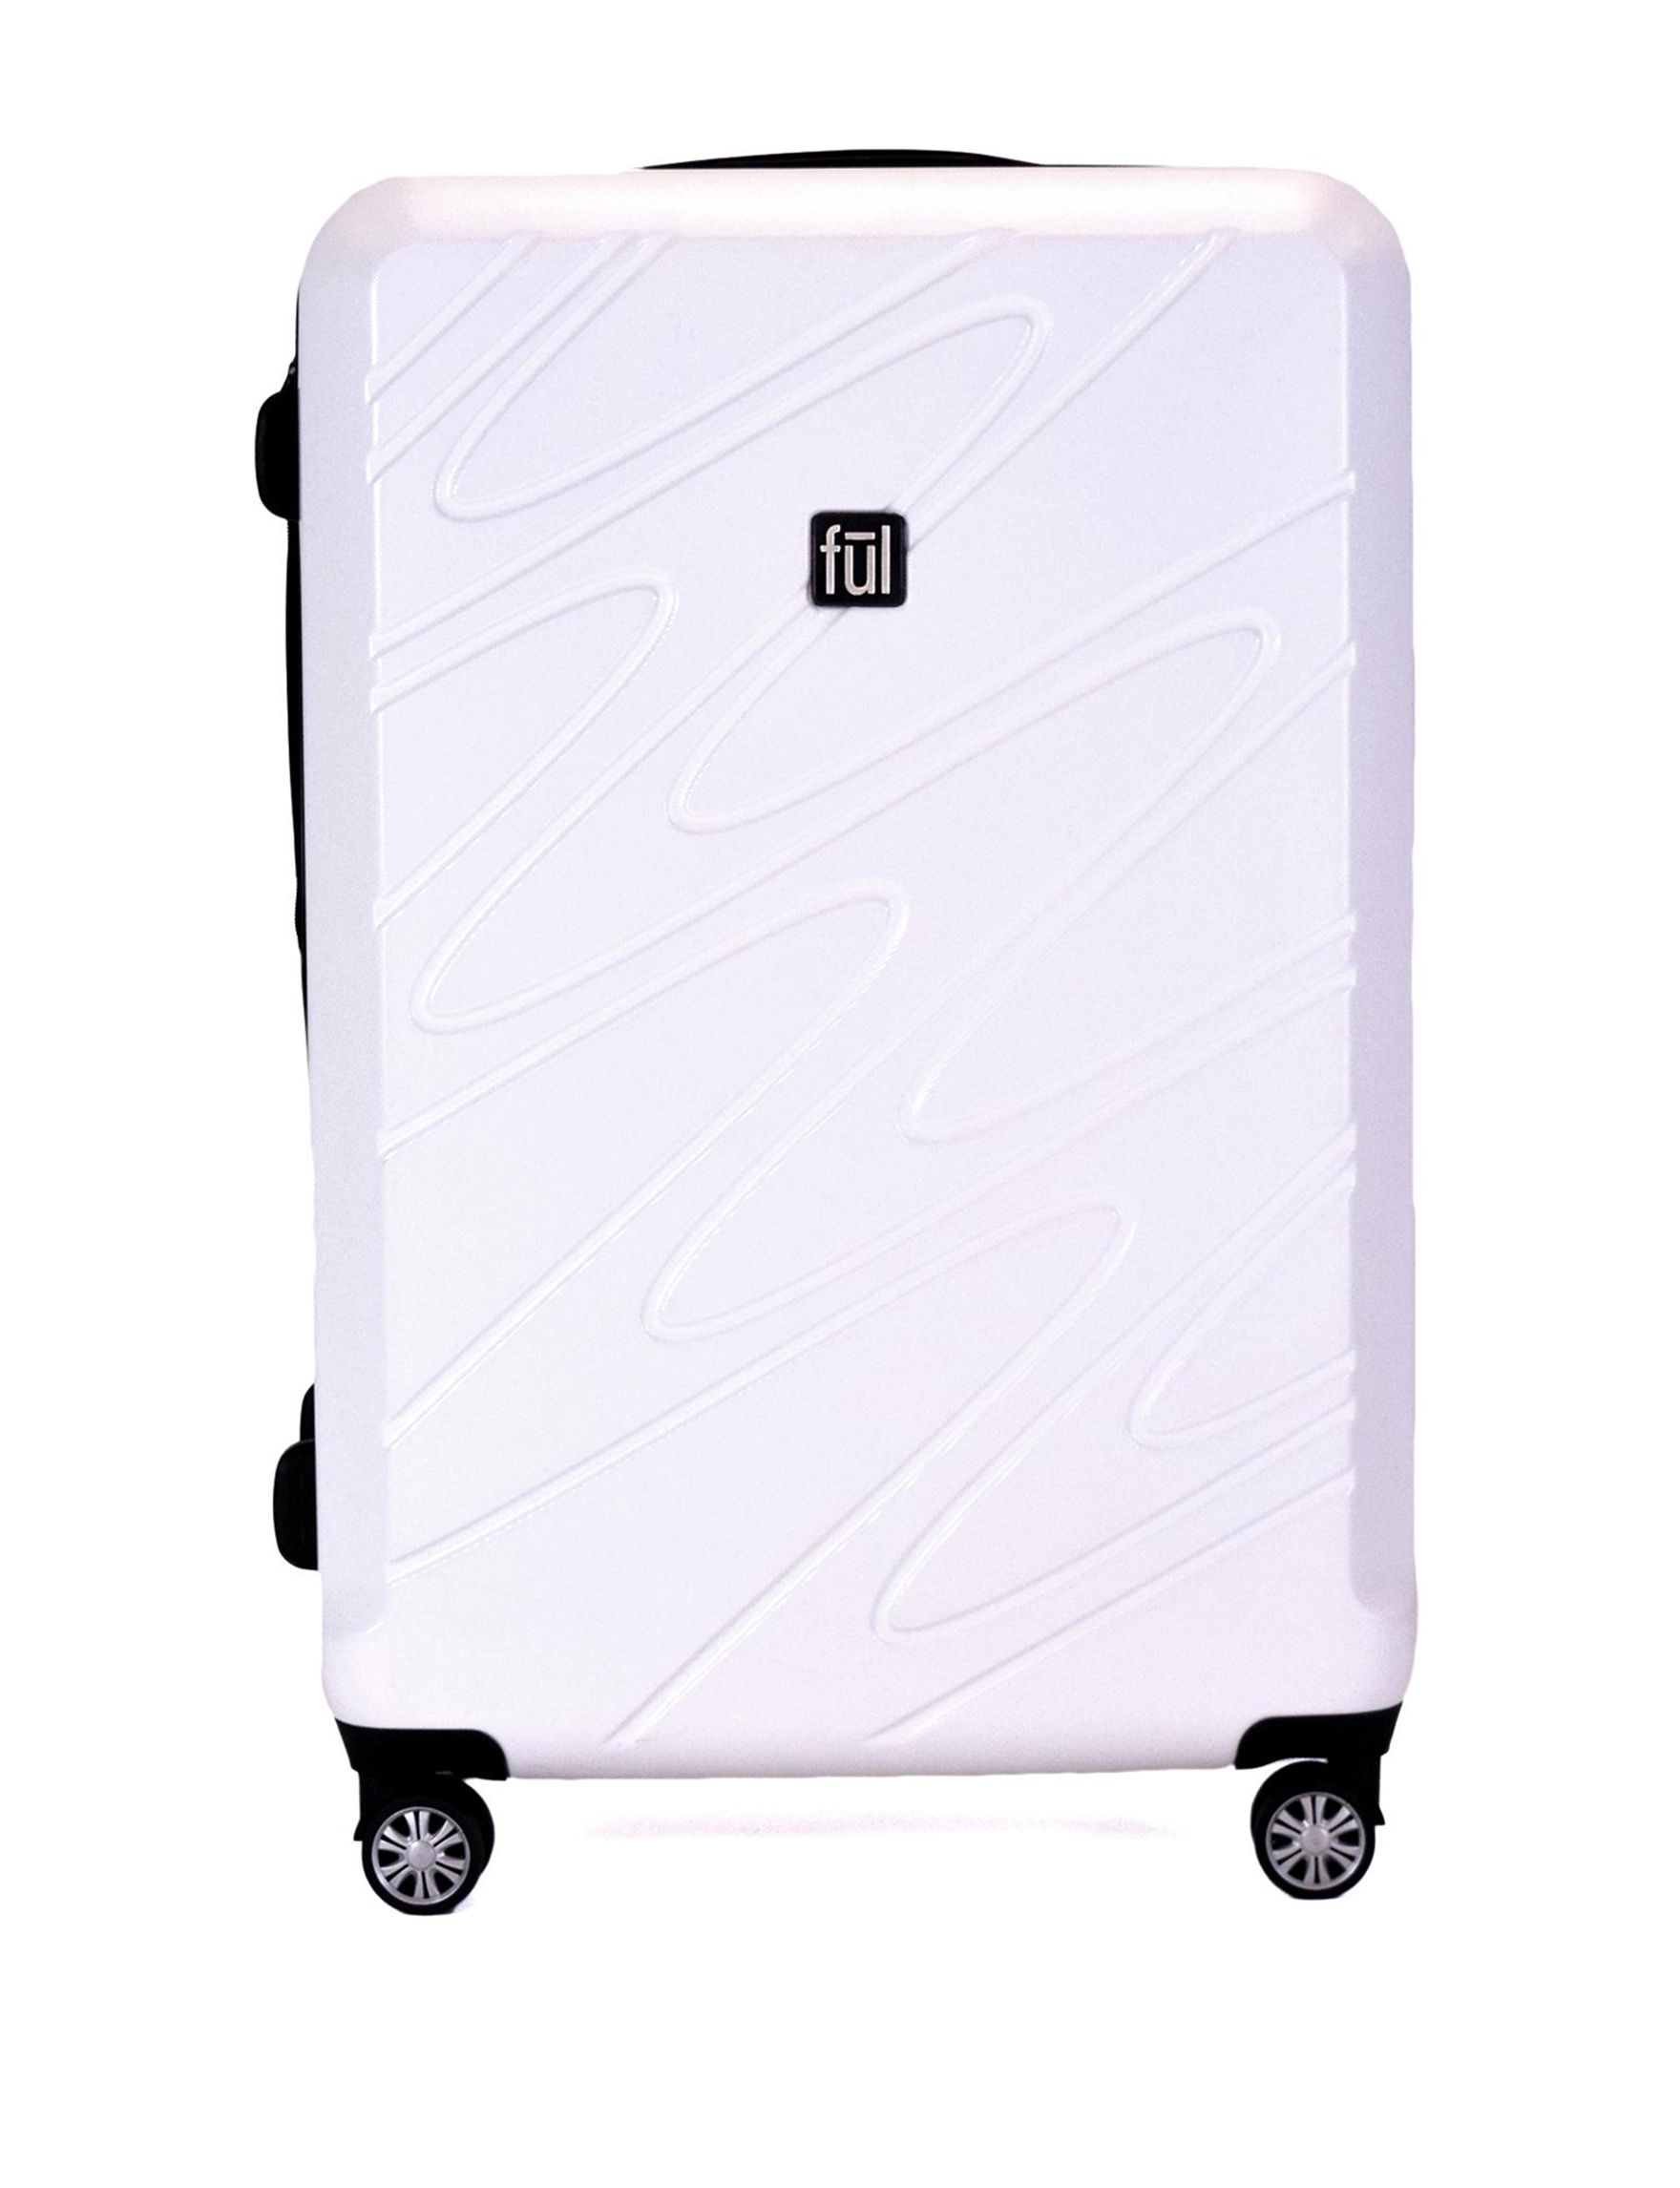 Ful White Upright Spinners